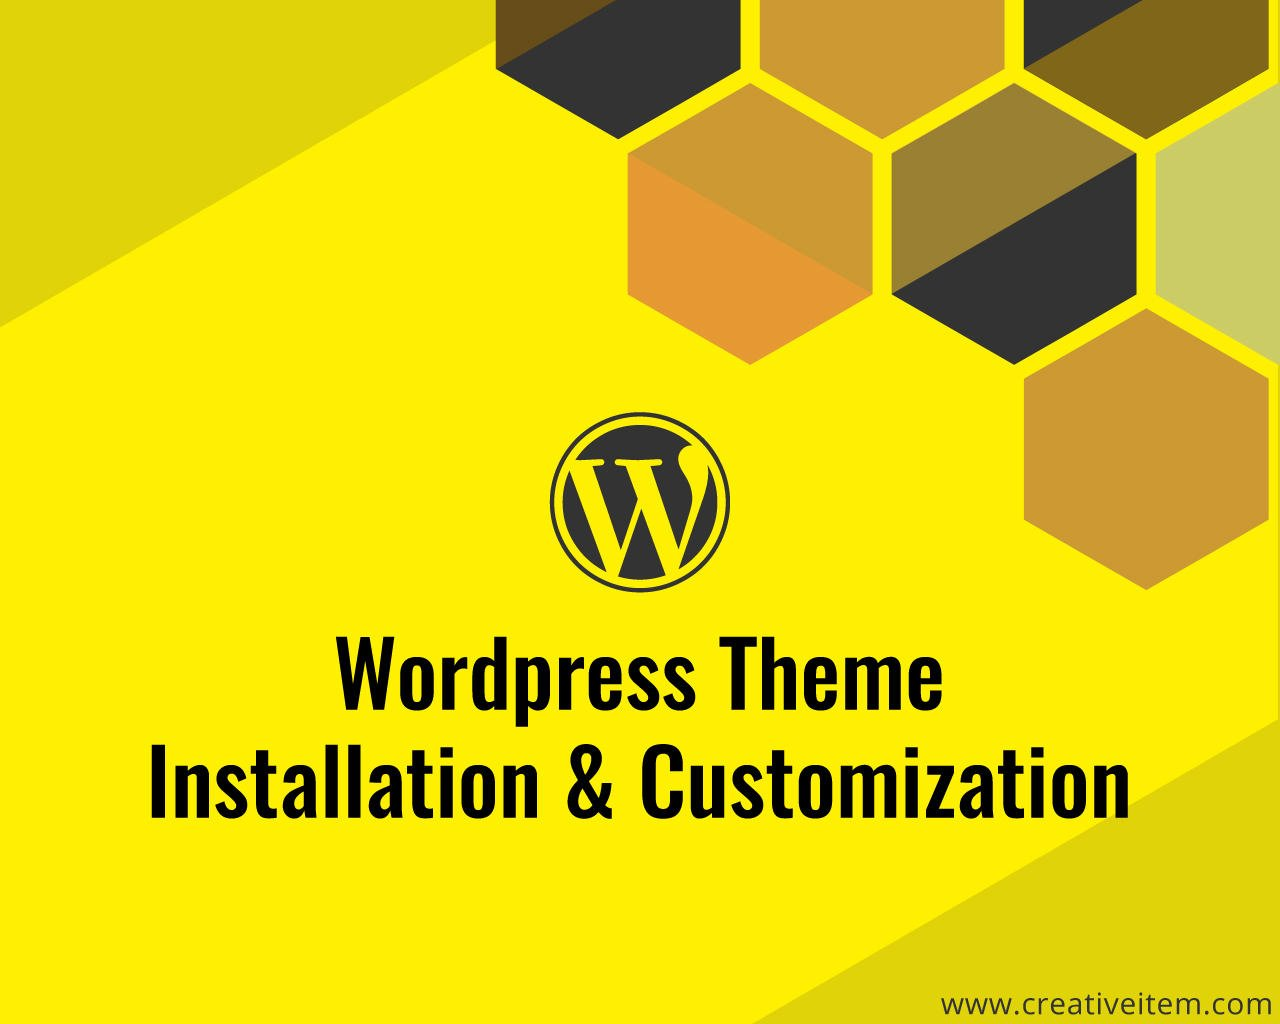 Wordpress, WooCommerce Theme Plugin Installation, Customization by Creativeitem - 108751